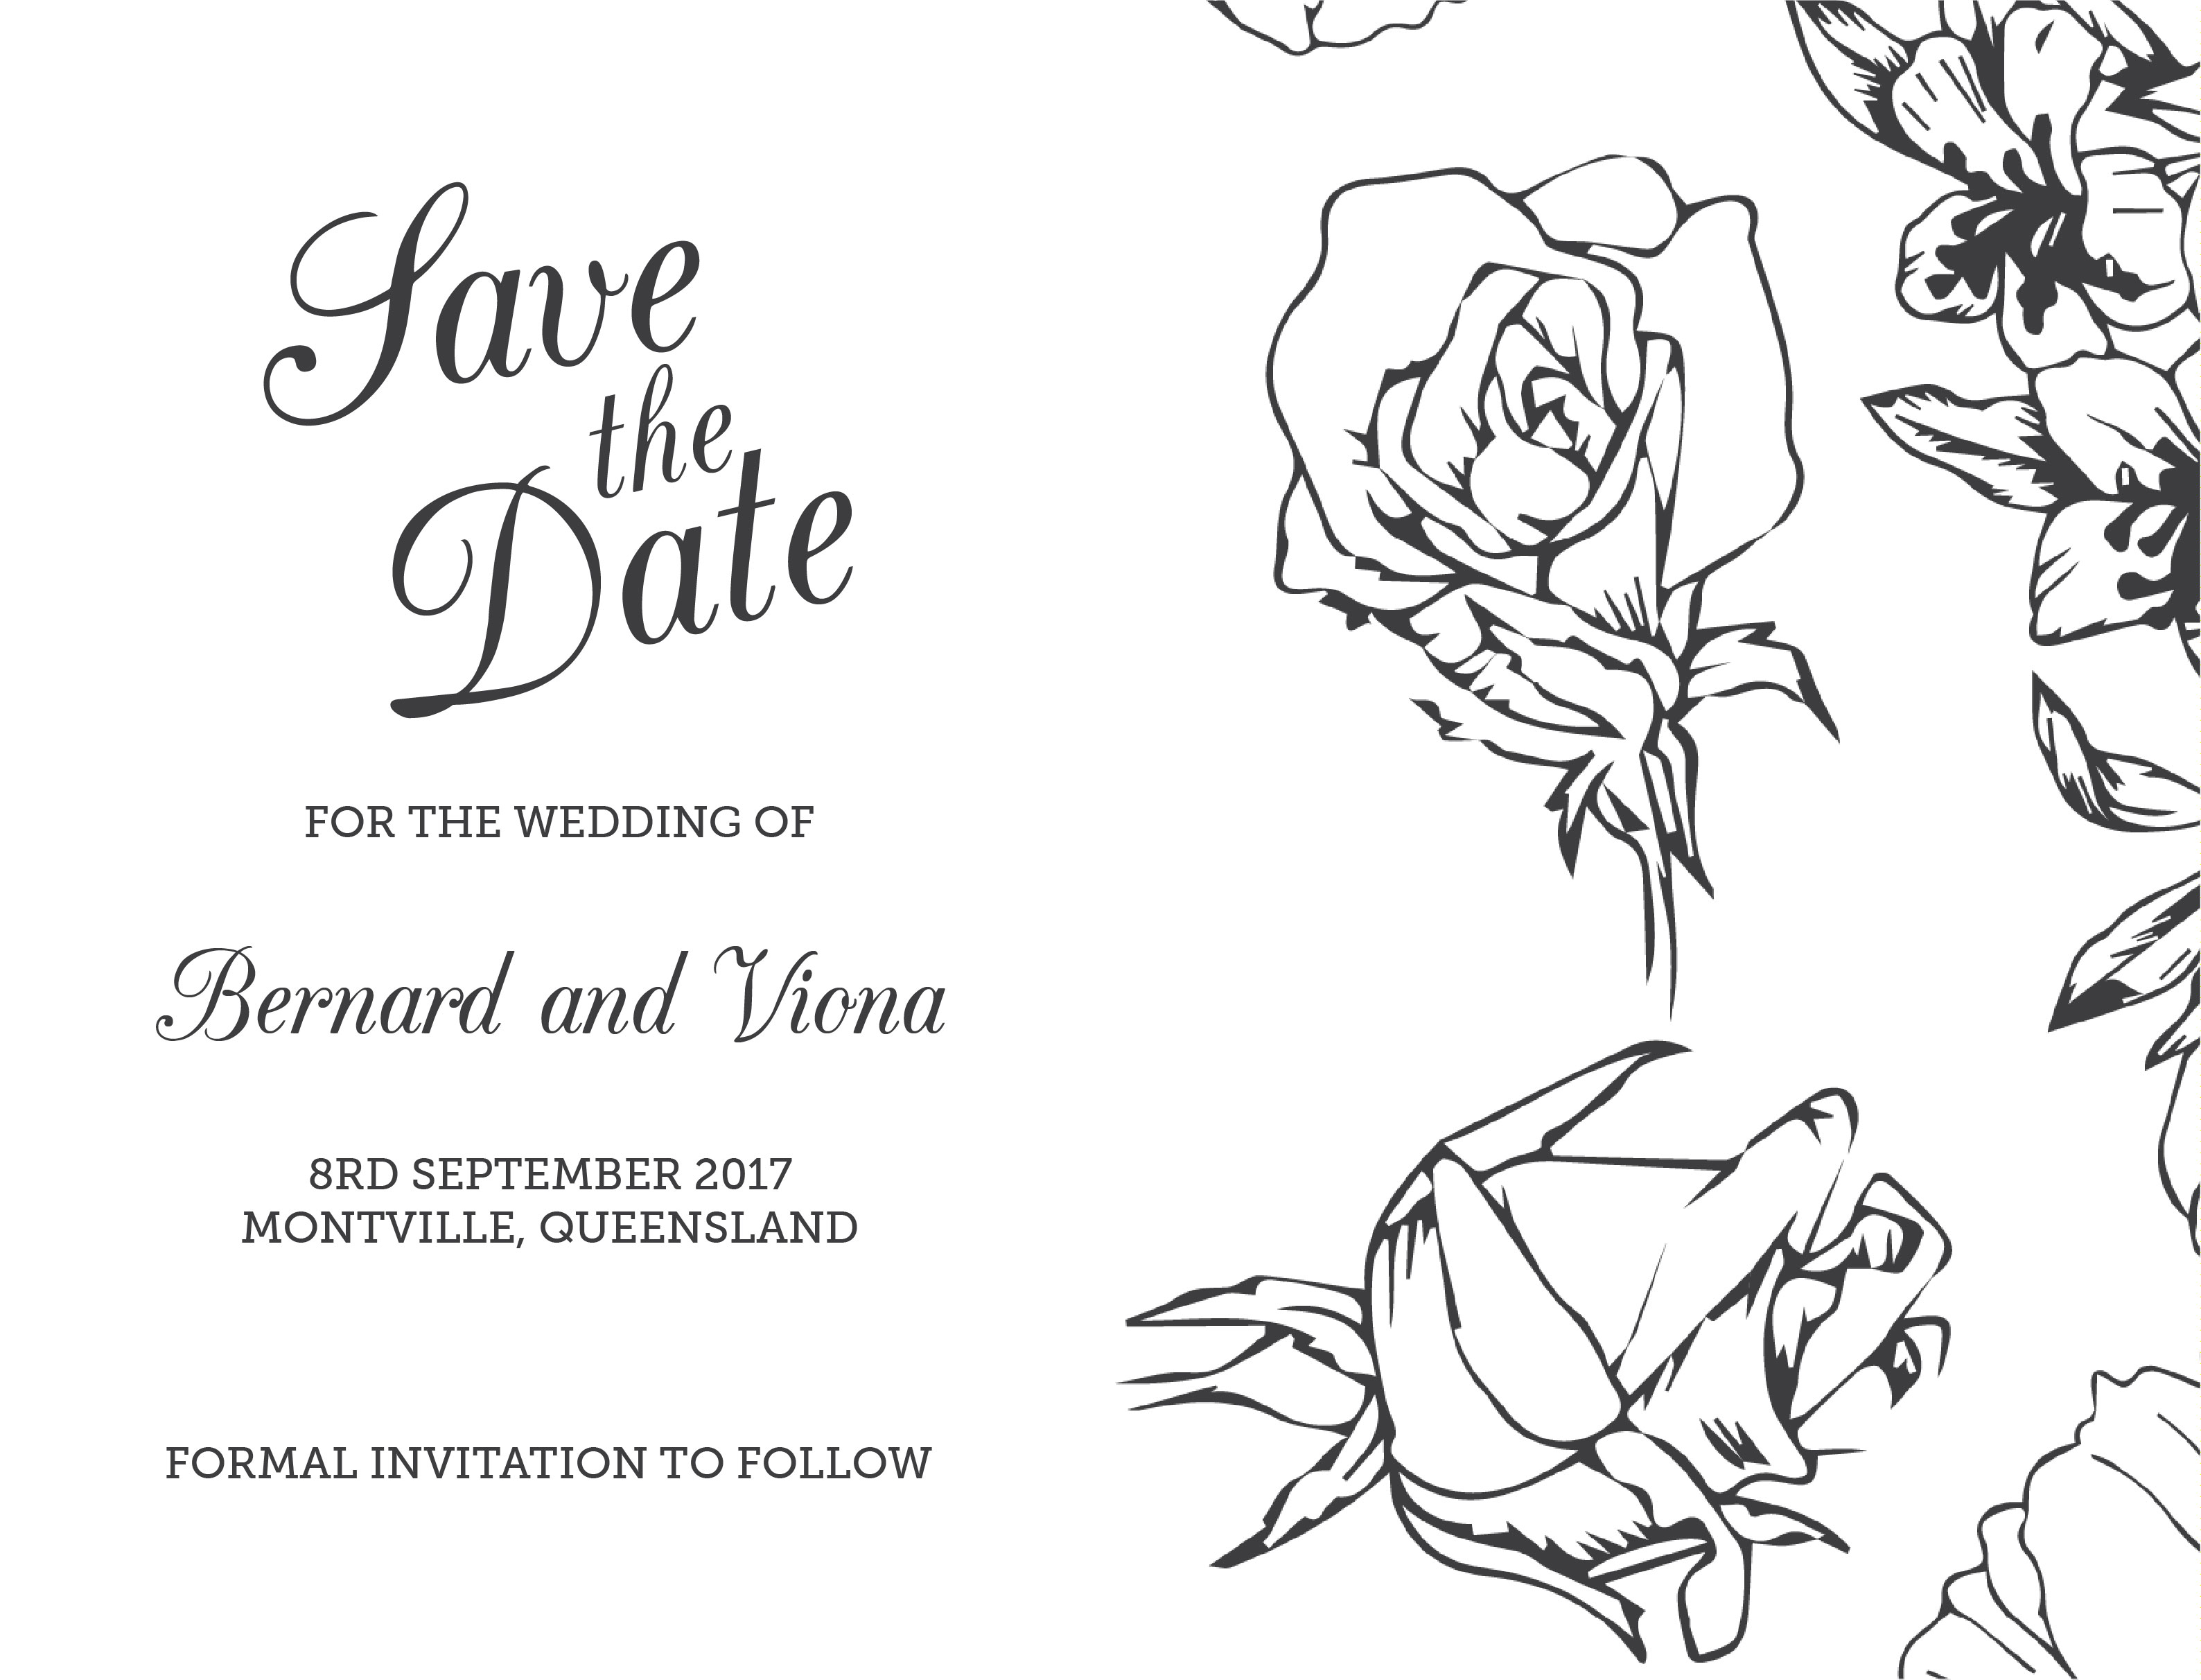 Flower Outline - Save The Date